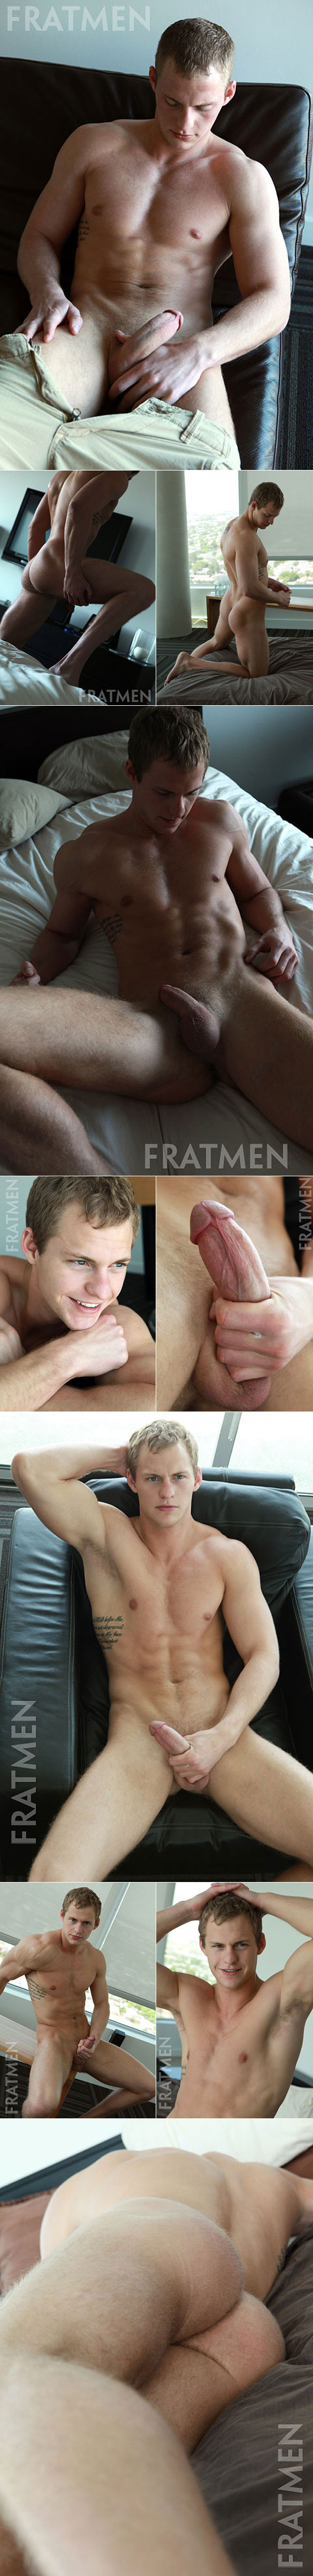 Fratmen.tv: Jason